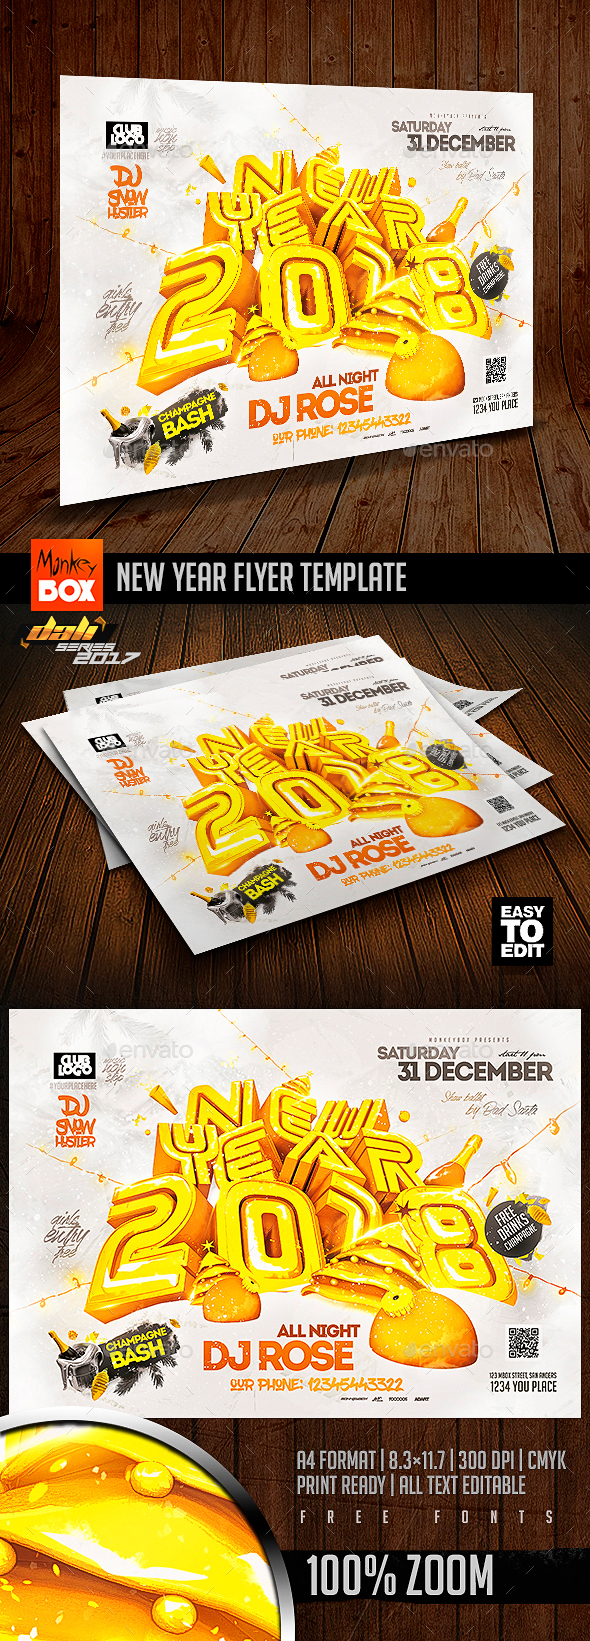 New Year Flyer Template - Flyers Print Templates